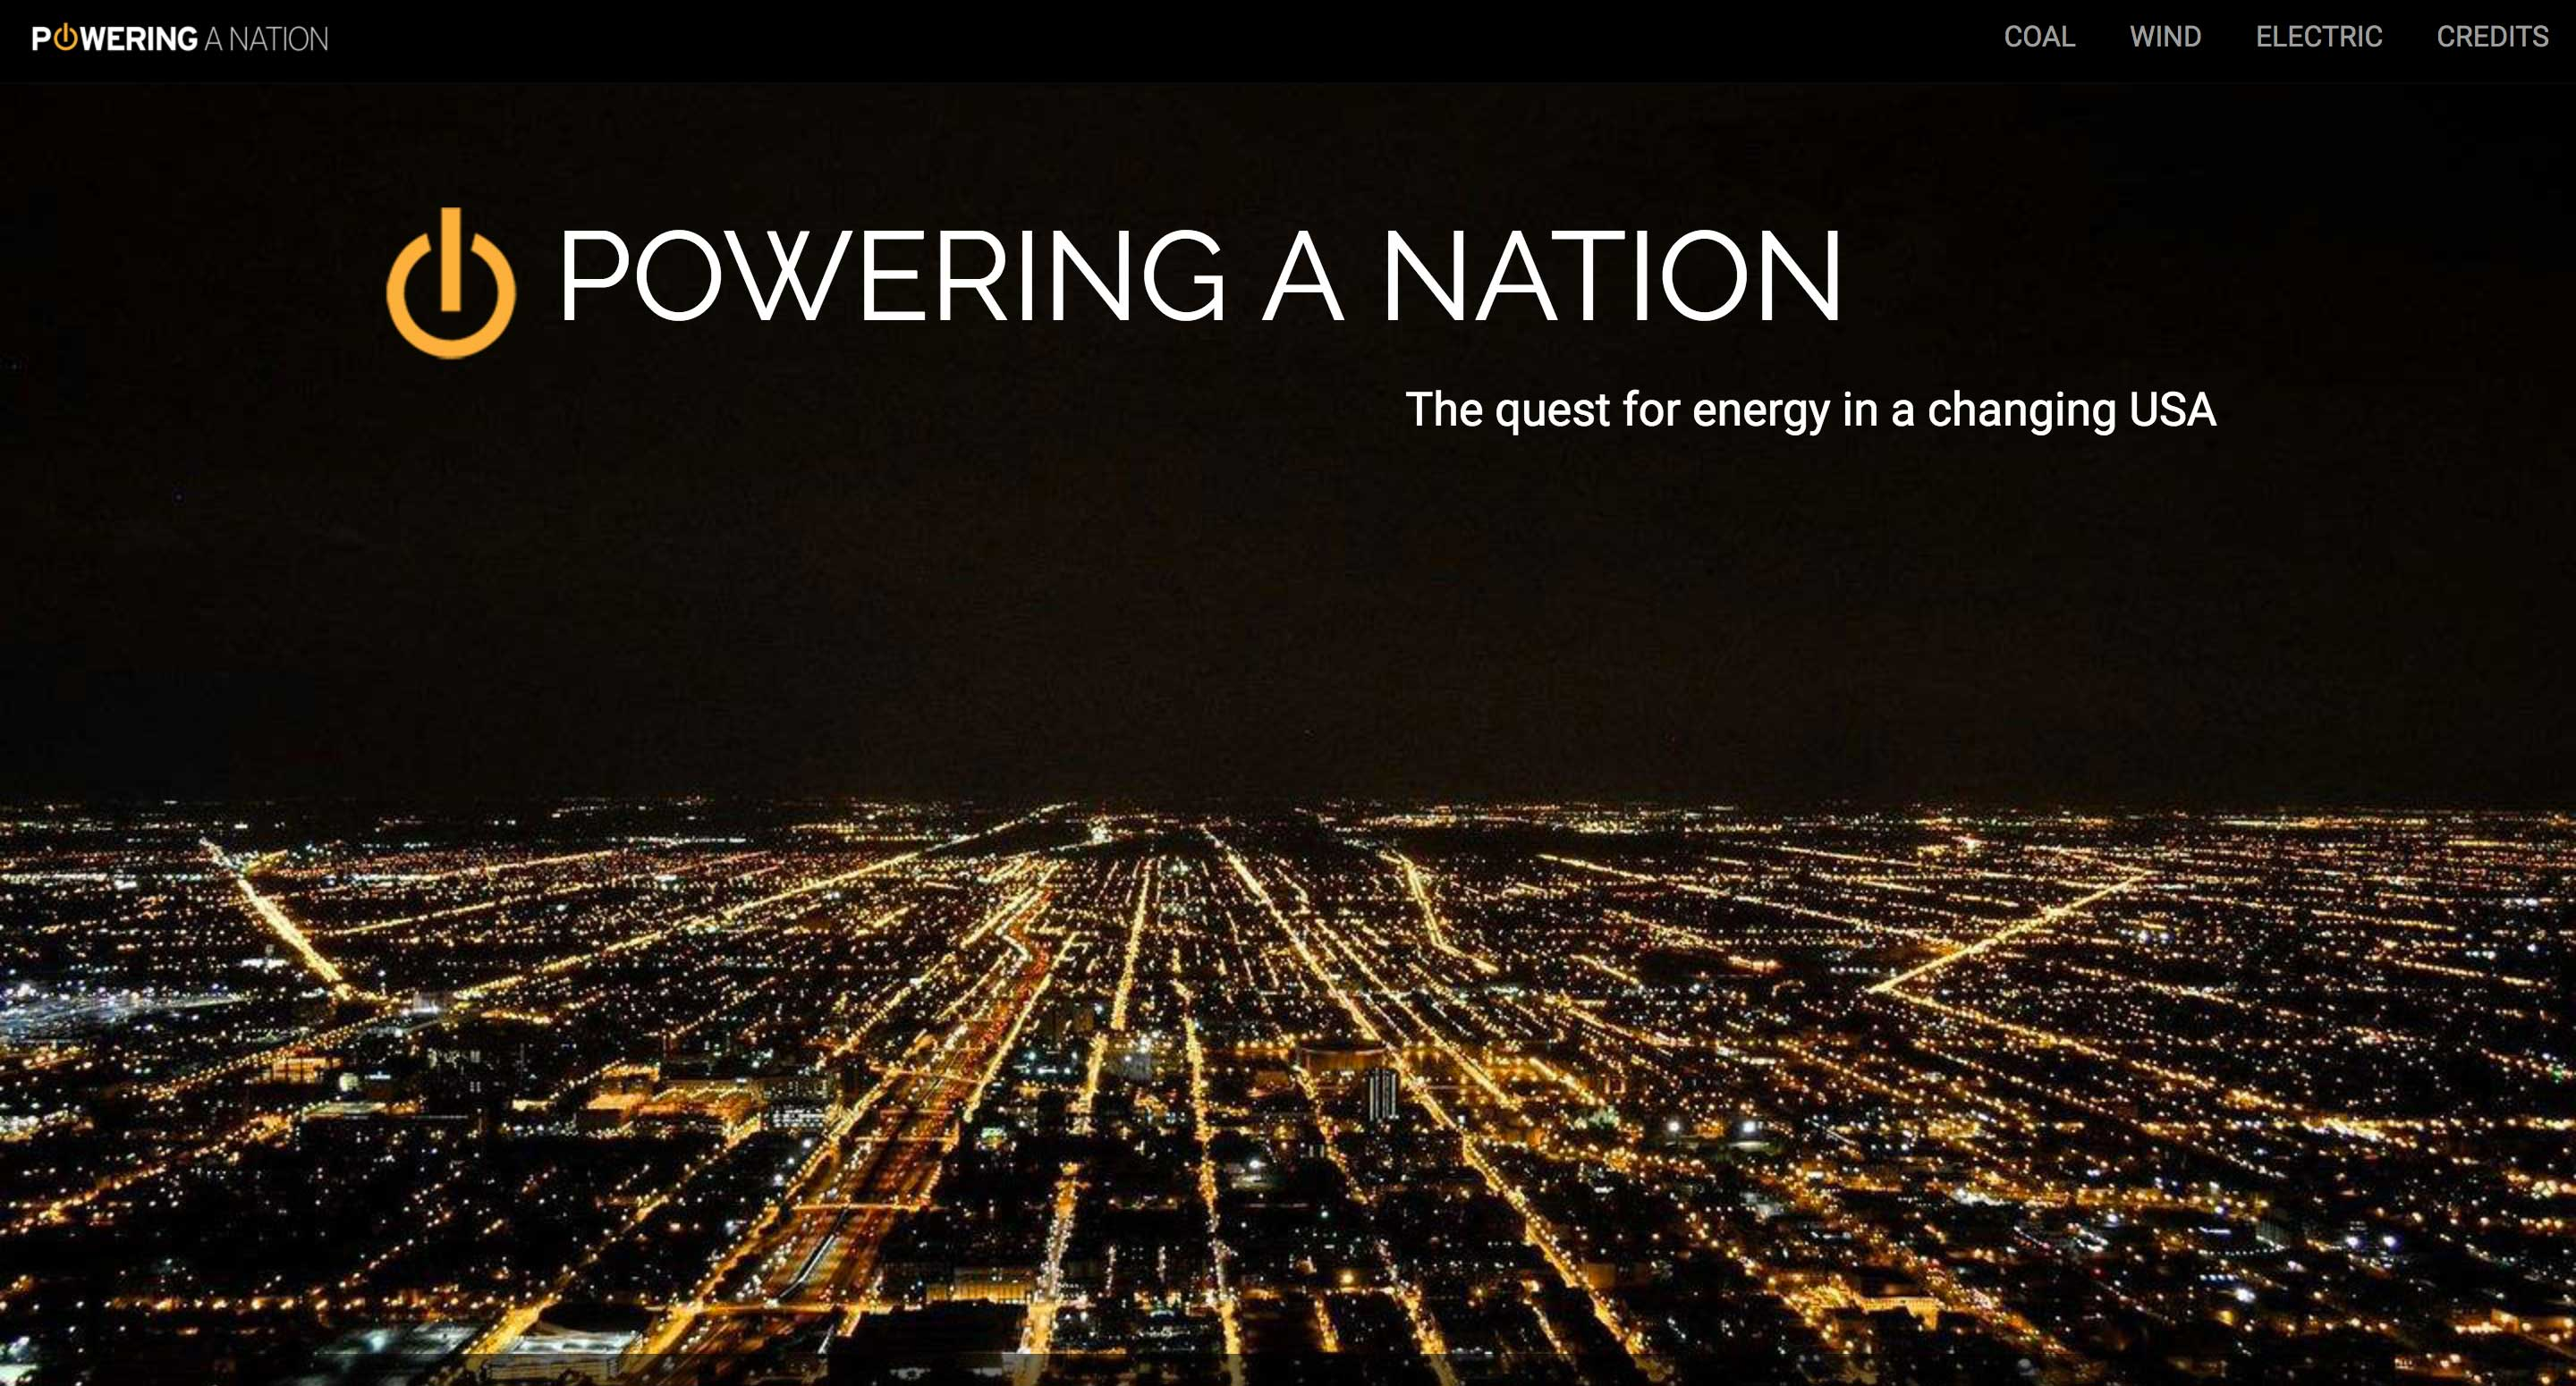 powering a nation homepage